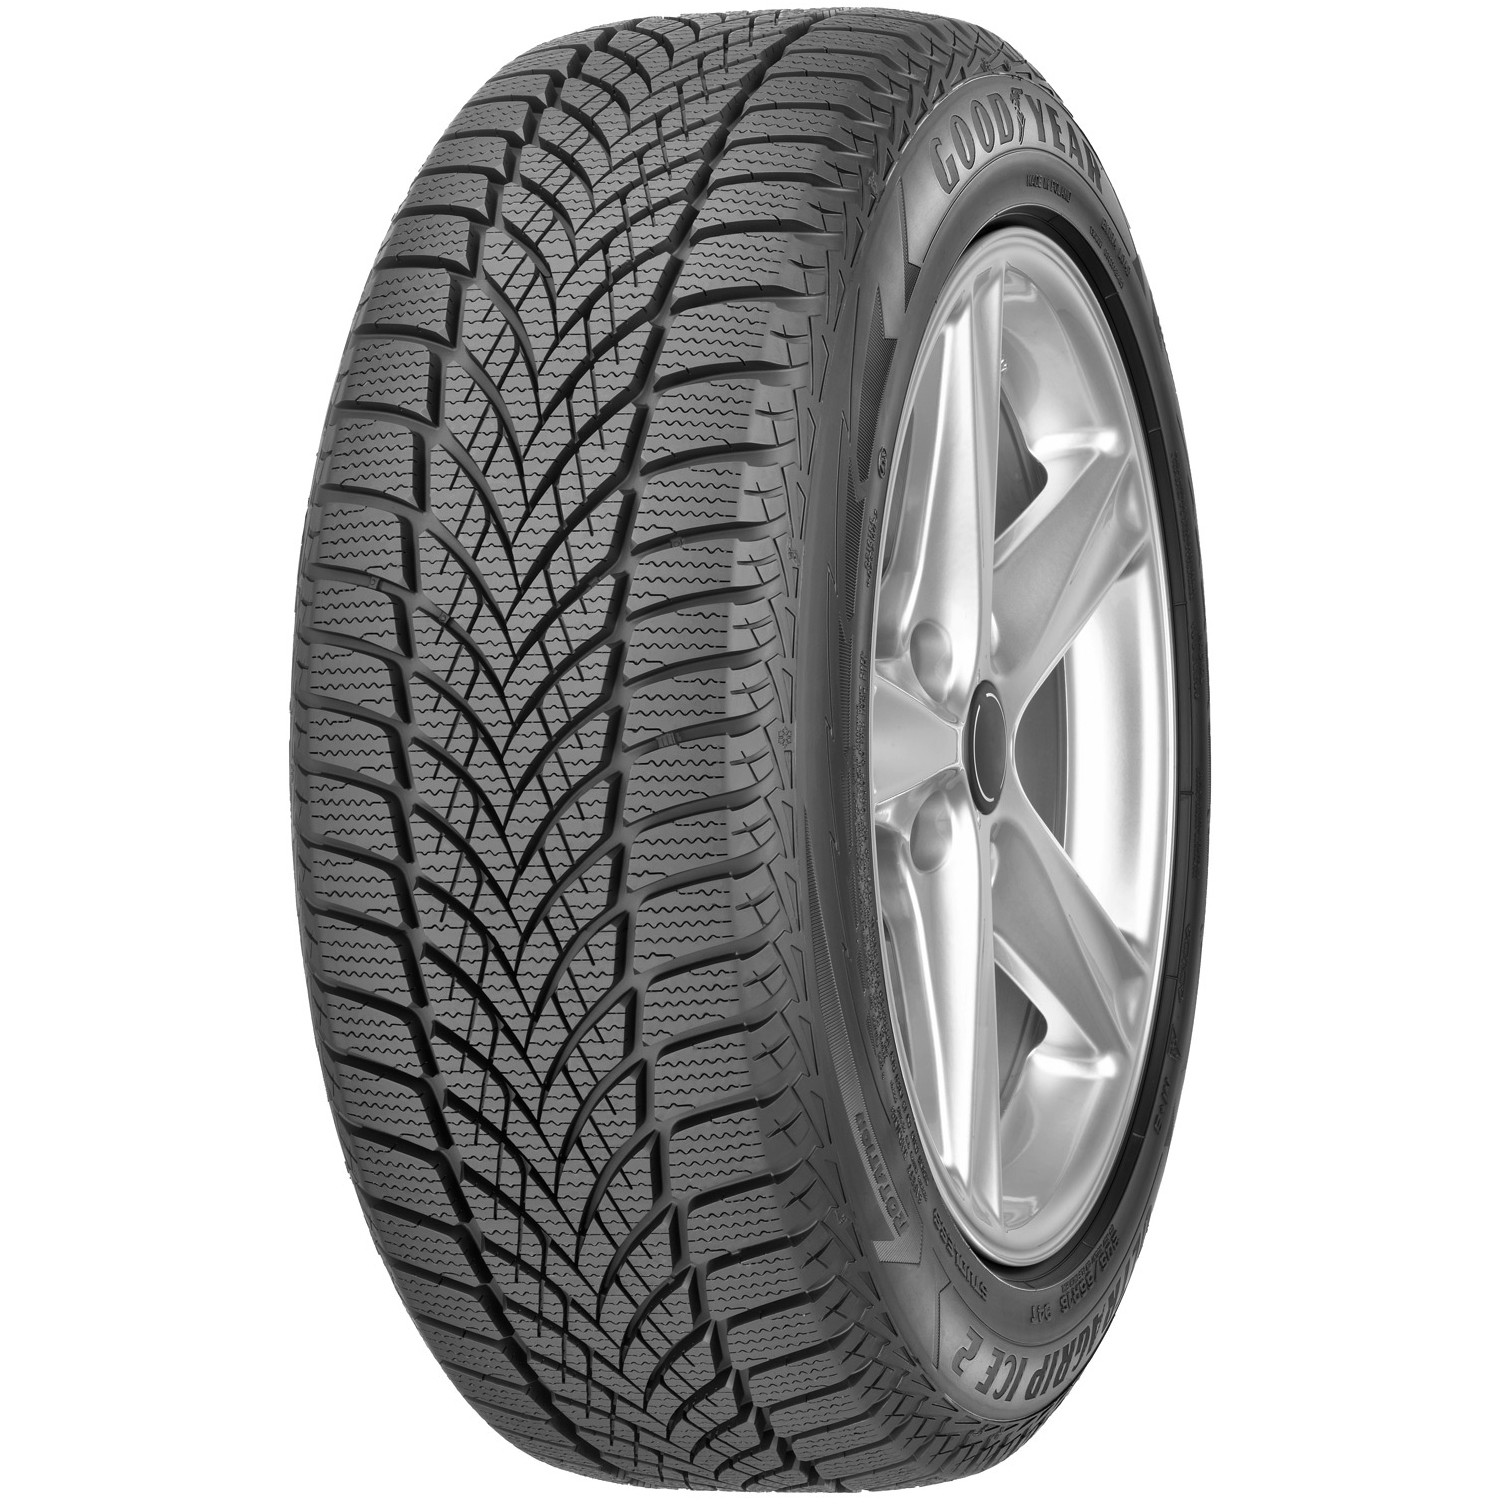 Автошина GOODYEAR ULTRAGRIP ICE 2 185/70 R14 88T Зима